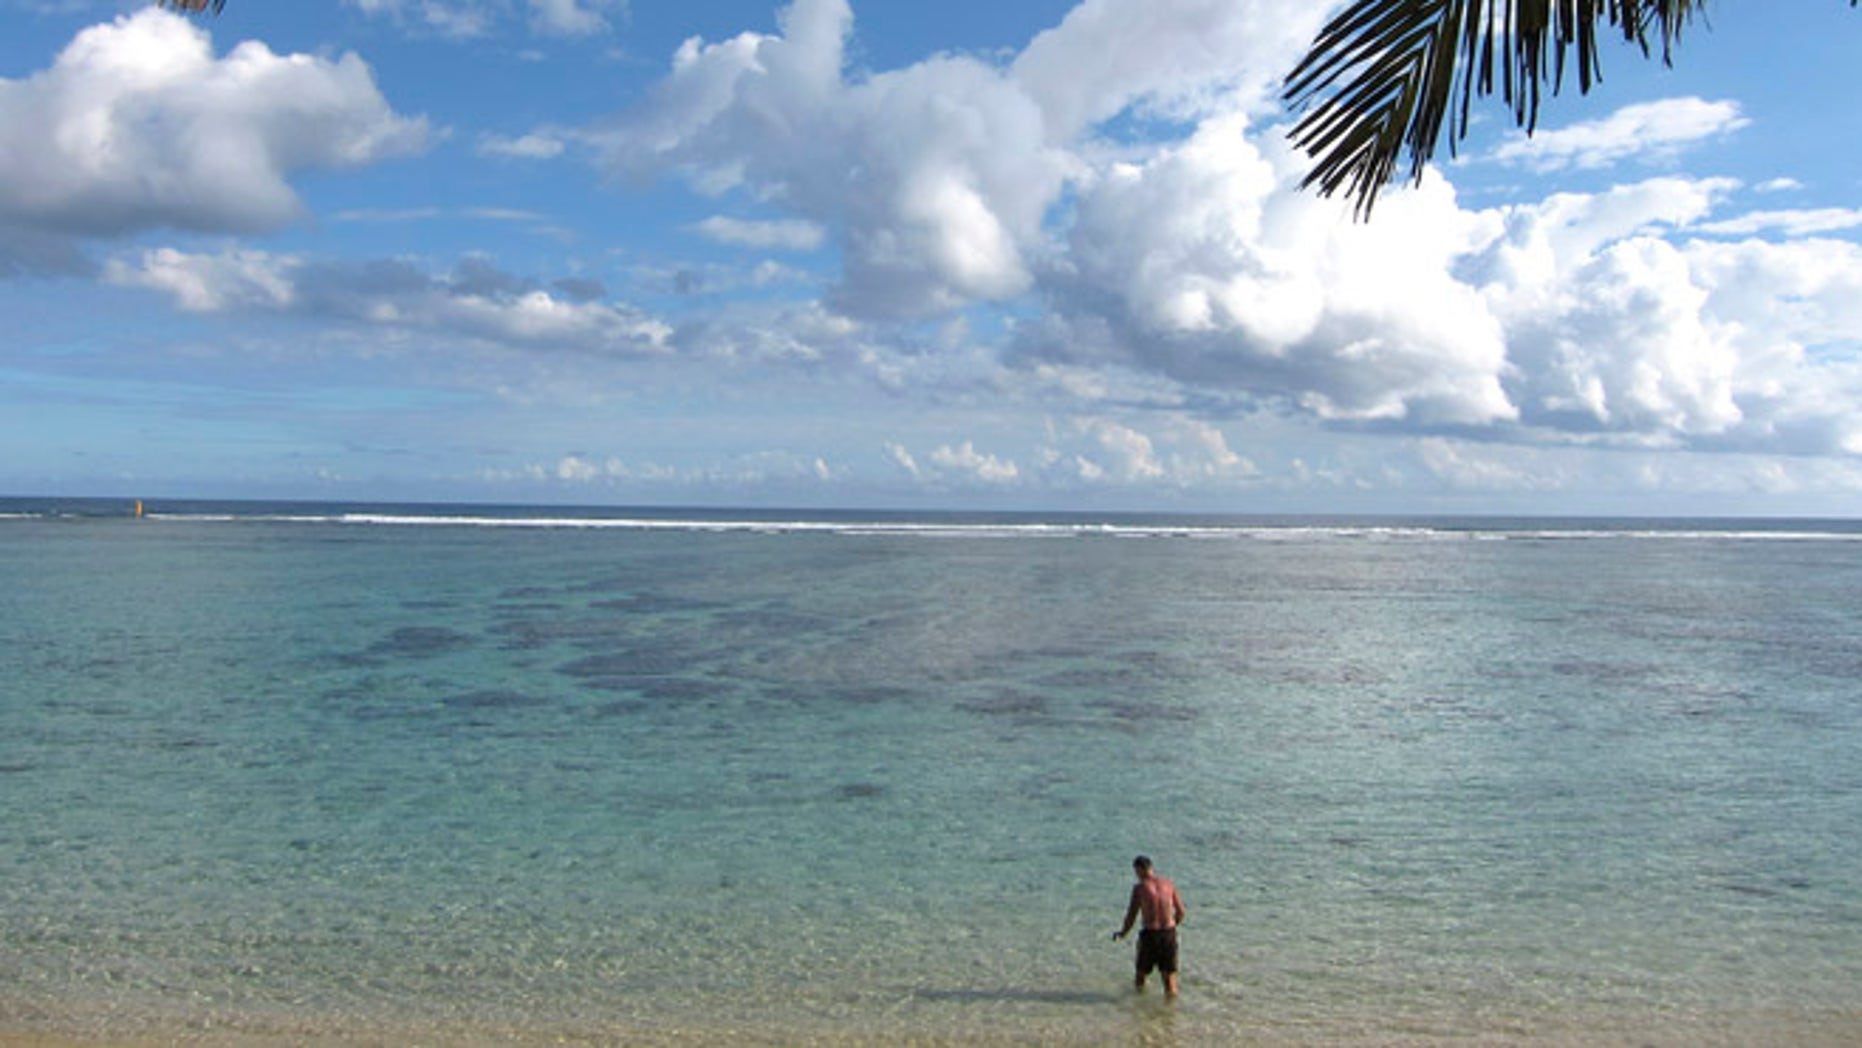 In this June 22, 2010 file photo, a man enjoys the beach of Saint Paul, northwest of the Reunion  island, a French oversea territory in the Indian Ocean. Authorities on the island say a 15-year-old girl was killed Monday July 15, 2013 by a shark as she swam just a few meters from the shore in Saint-Paul. While the French island has seen occasional attacks on surfers farther out from shore, officials say attacks on swimmers close to shore are exceedingly rare.